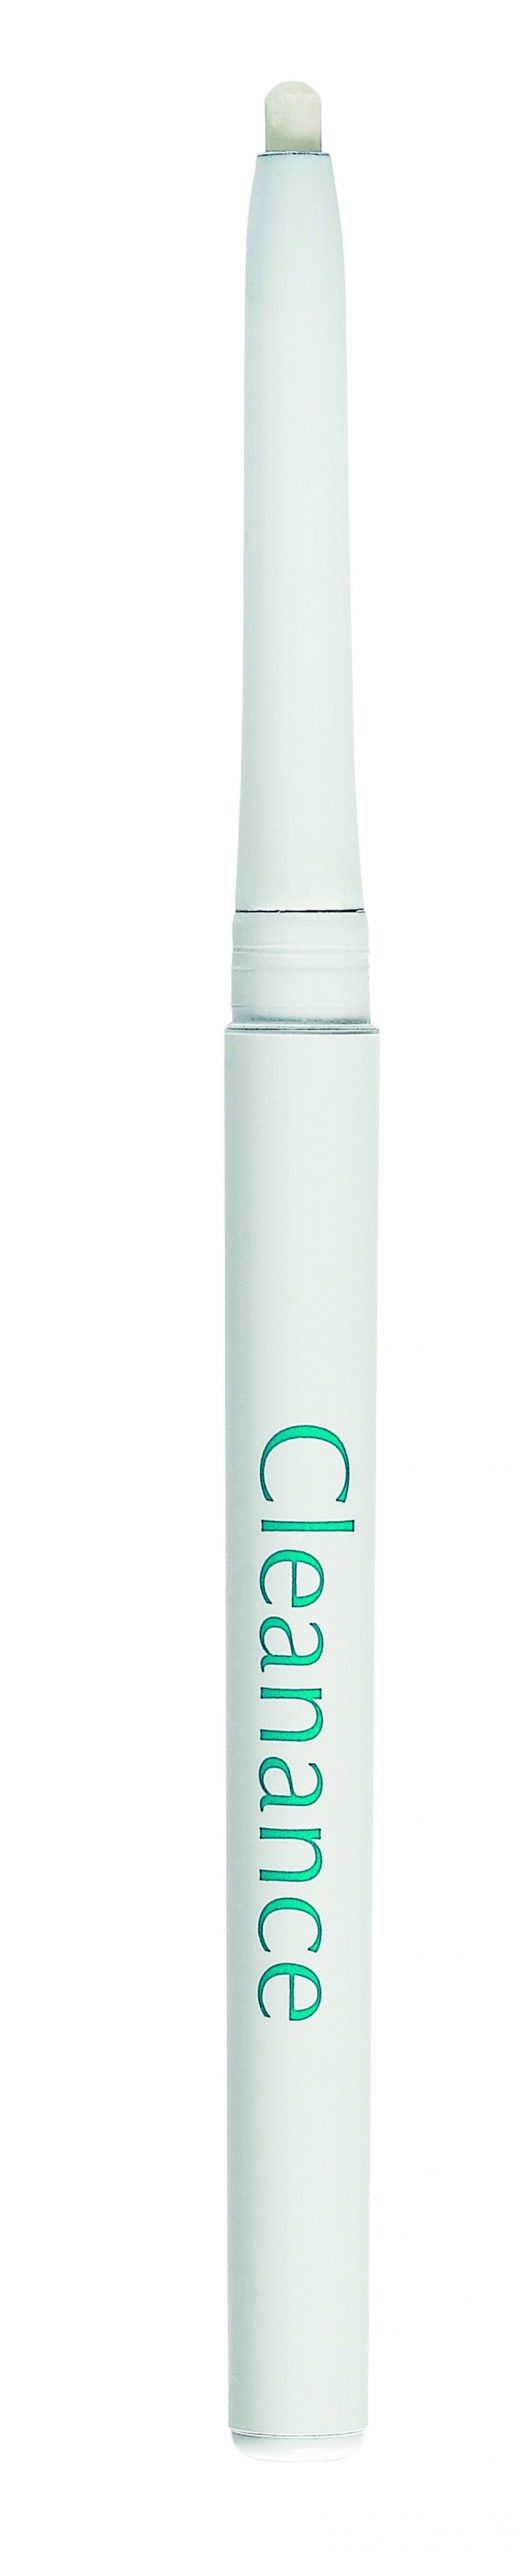 Avene cleanance spot treatment